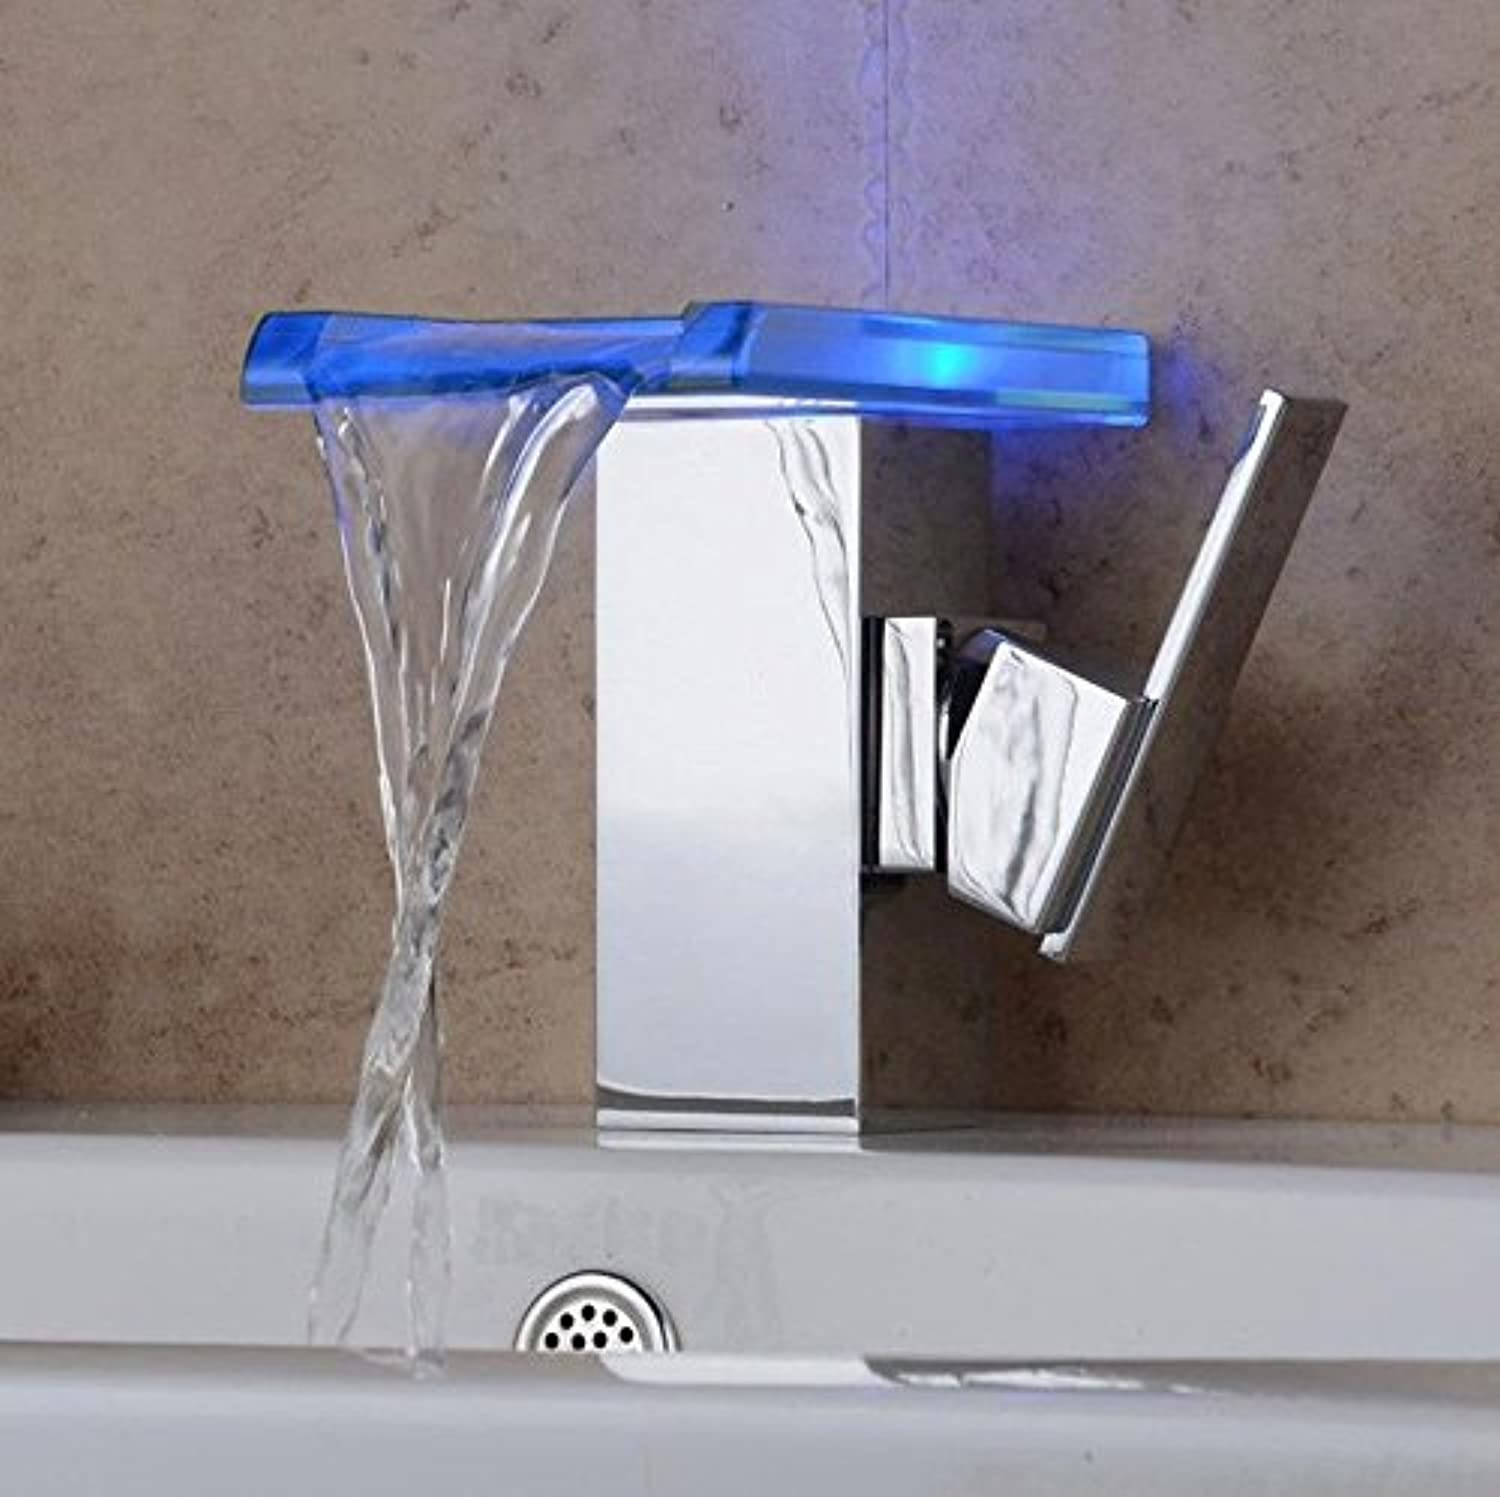 AQMMi Basin Sink Mixer Tap for Lavatory LED Thermostatic Chrome Brass Single Lever 1 Hole Glass Waterfall Single Lever Bathroom Vanity Sink Faucet